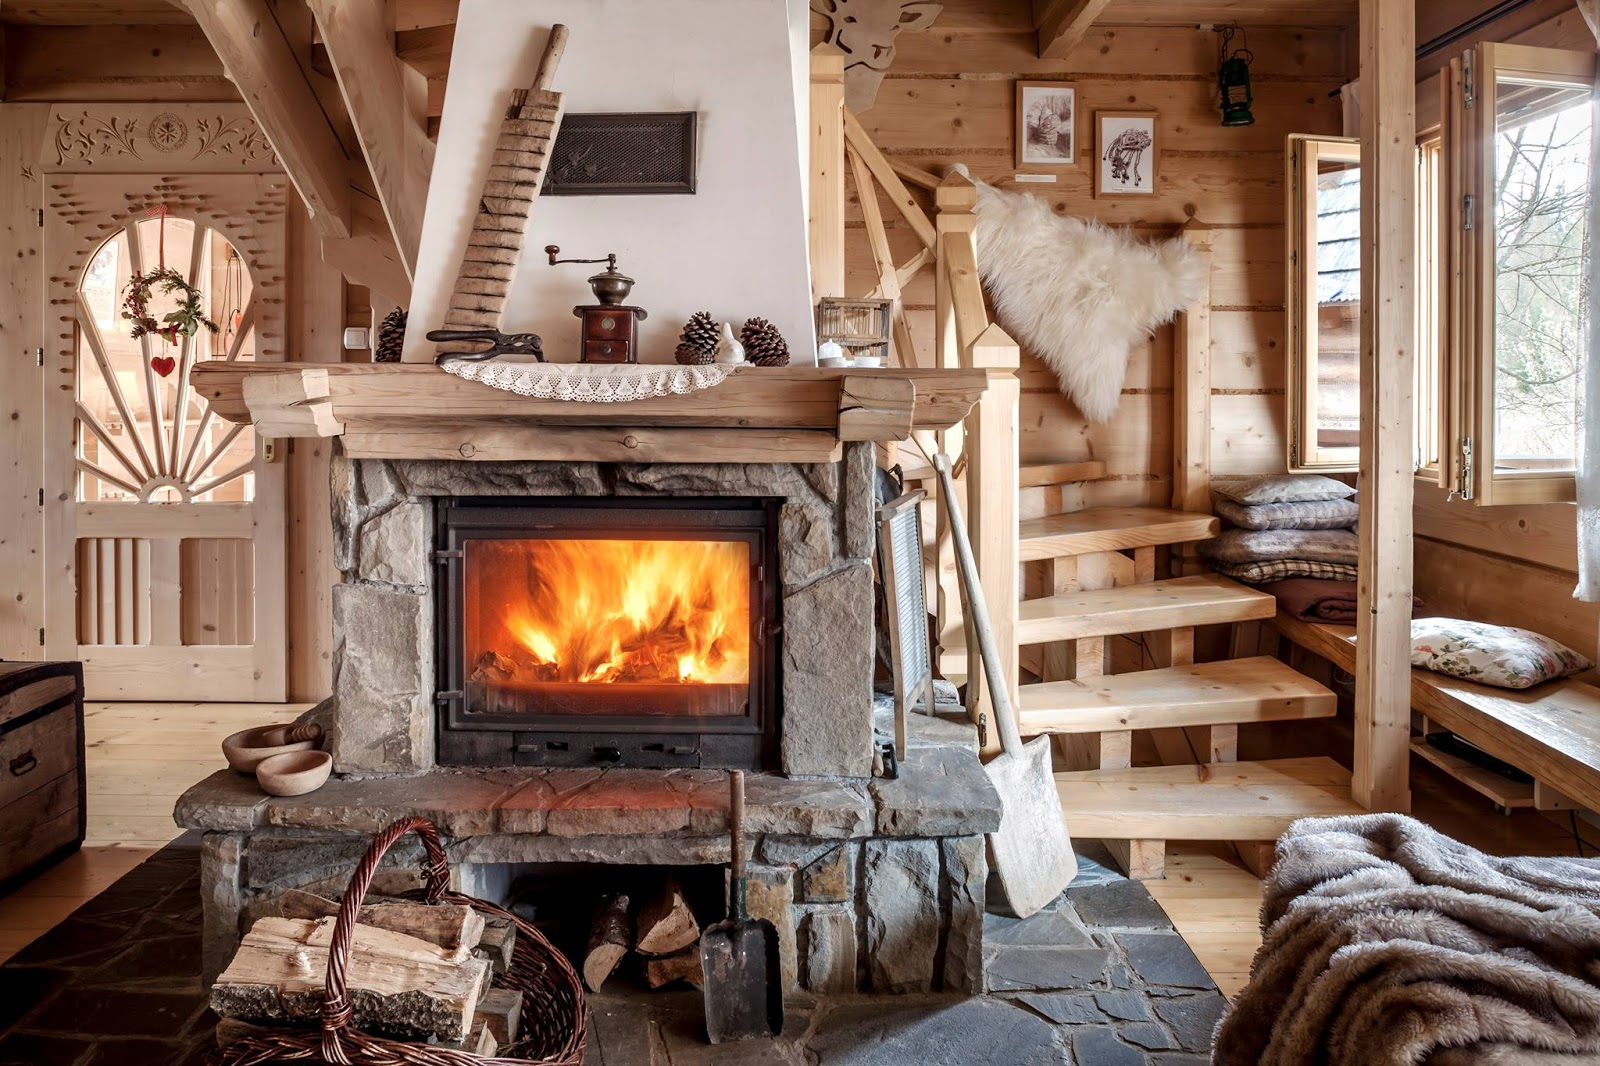 Stone fireplace in a mountain chalet